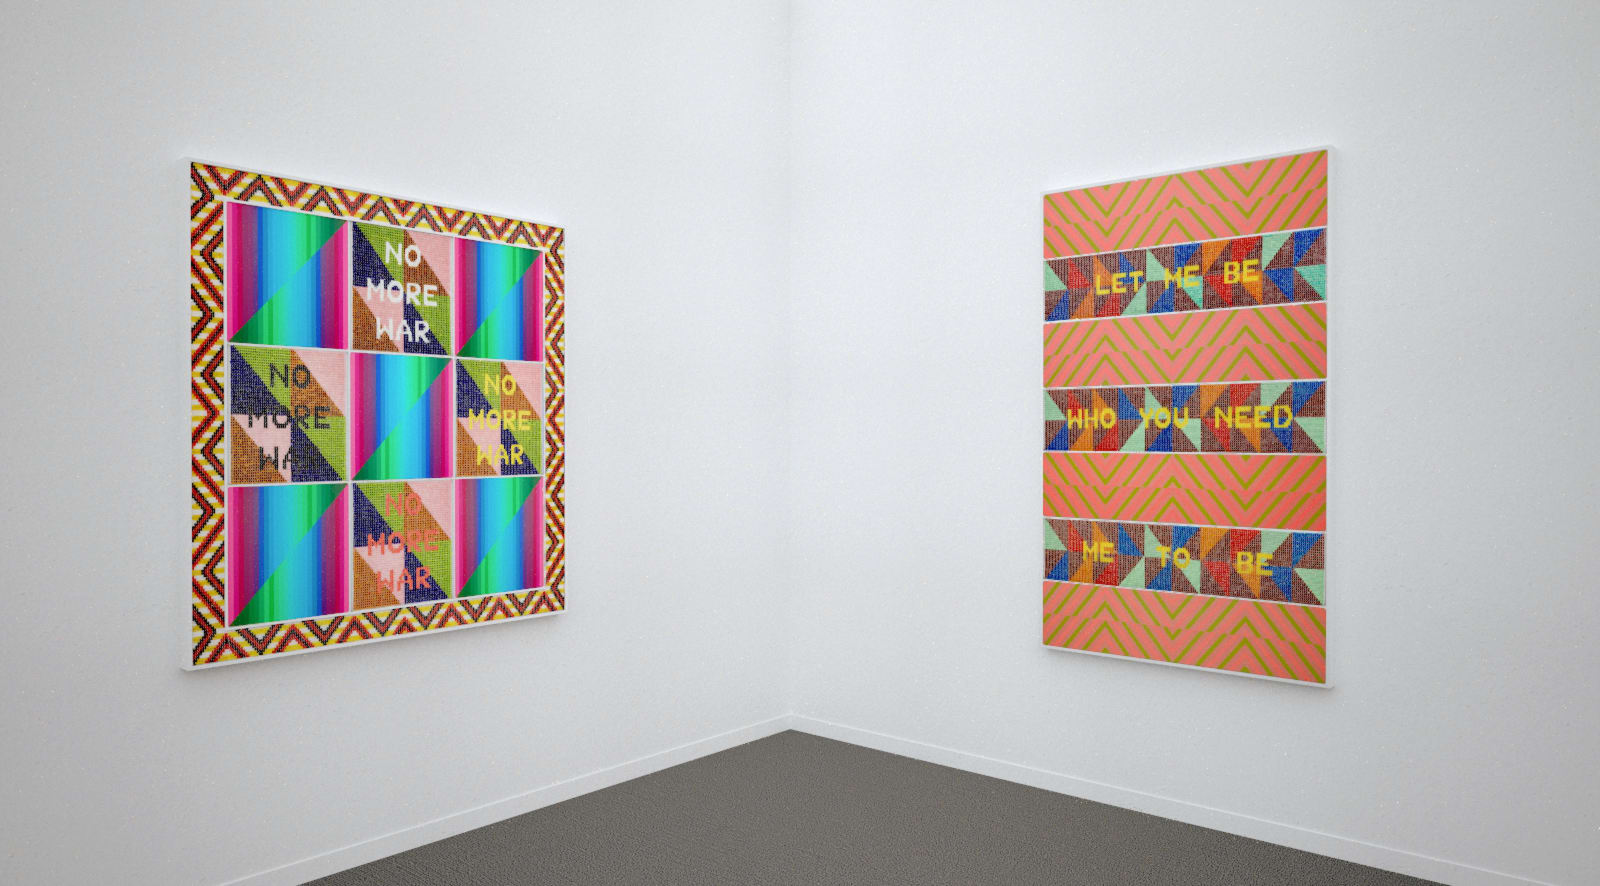 Works by Jeffrey Gibson at Frieze New York (Installation View), 2020, Kavi Gupta